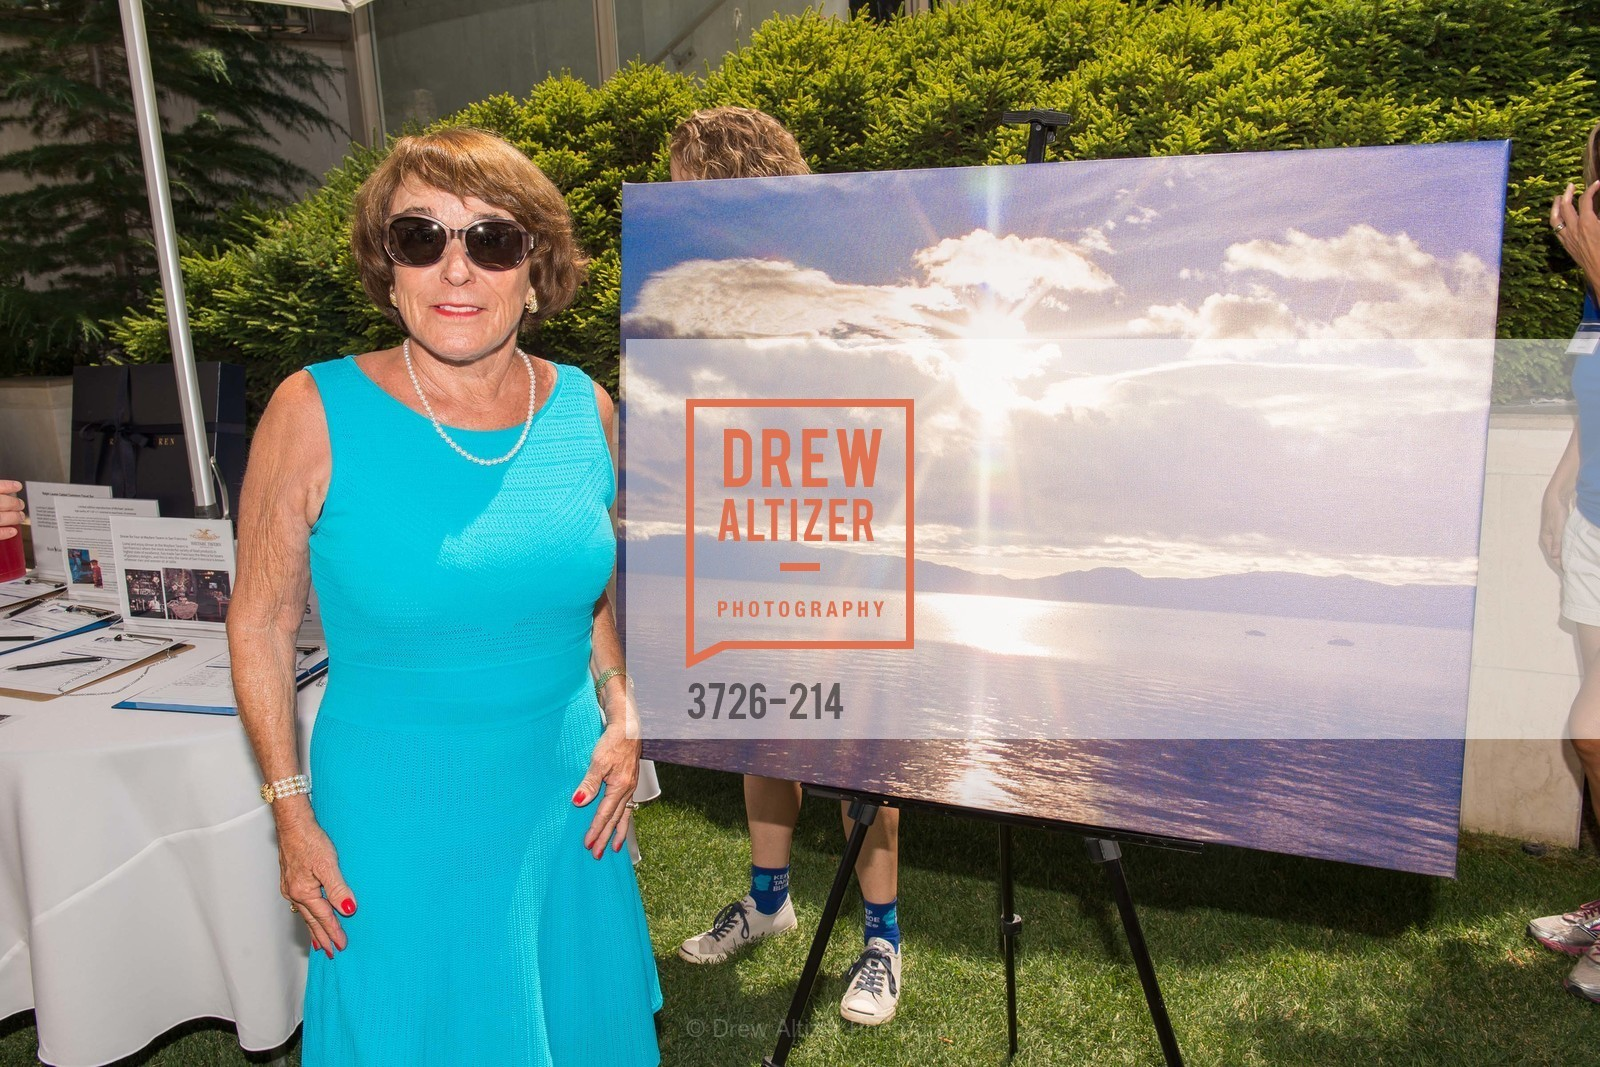 Barbara Zubrick, Saks Fifth Avenue and The League to Save Lake Tahoe Present Fashion on the Lake, Private Residence, August 1st, 2015,Drew Altizer, Drew Altizer Photography, full-service agency, private events, San Francisco photographer, photographer california